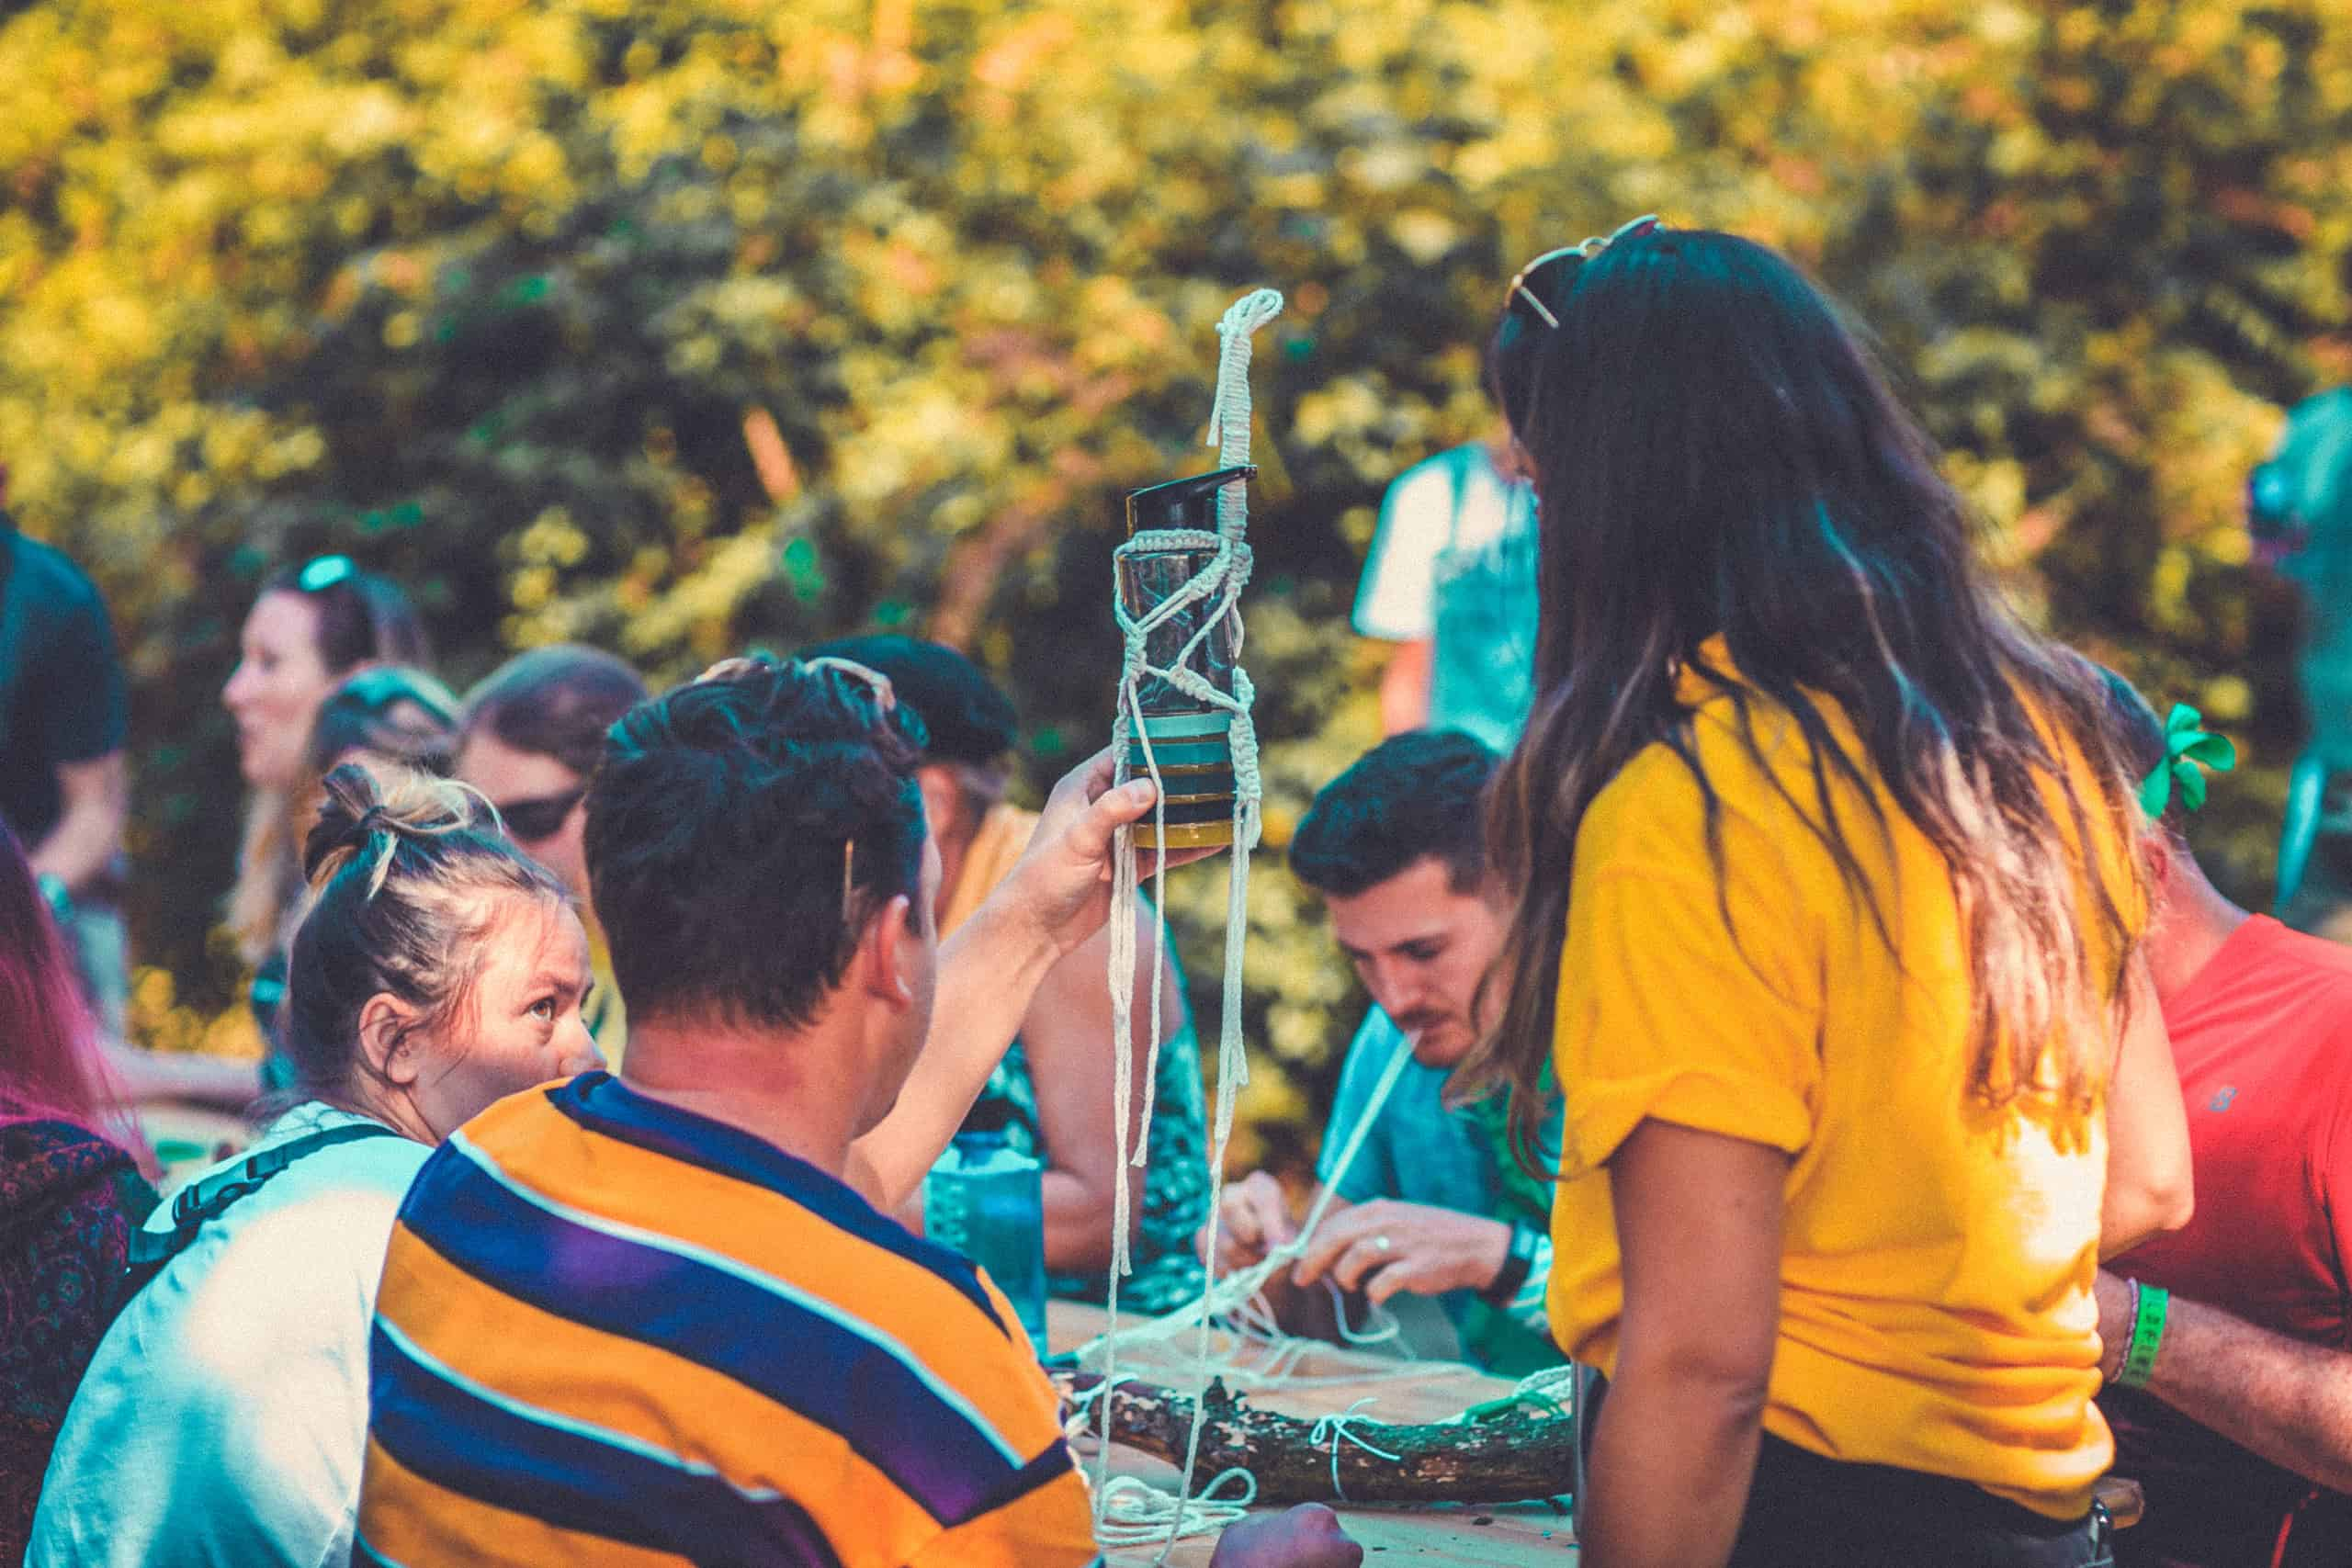 Macrame activity at Camp Wildfire. A summer weekend break in a forest near London and Kent. An outdoor woodland retreat featuring adventure activities, live music, DJs, parties and camping. Half summer adventure activity camp, half music festival, for adults only.